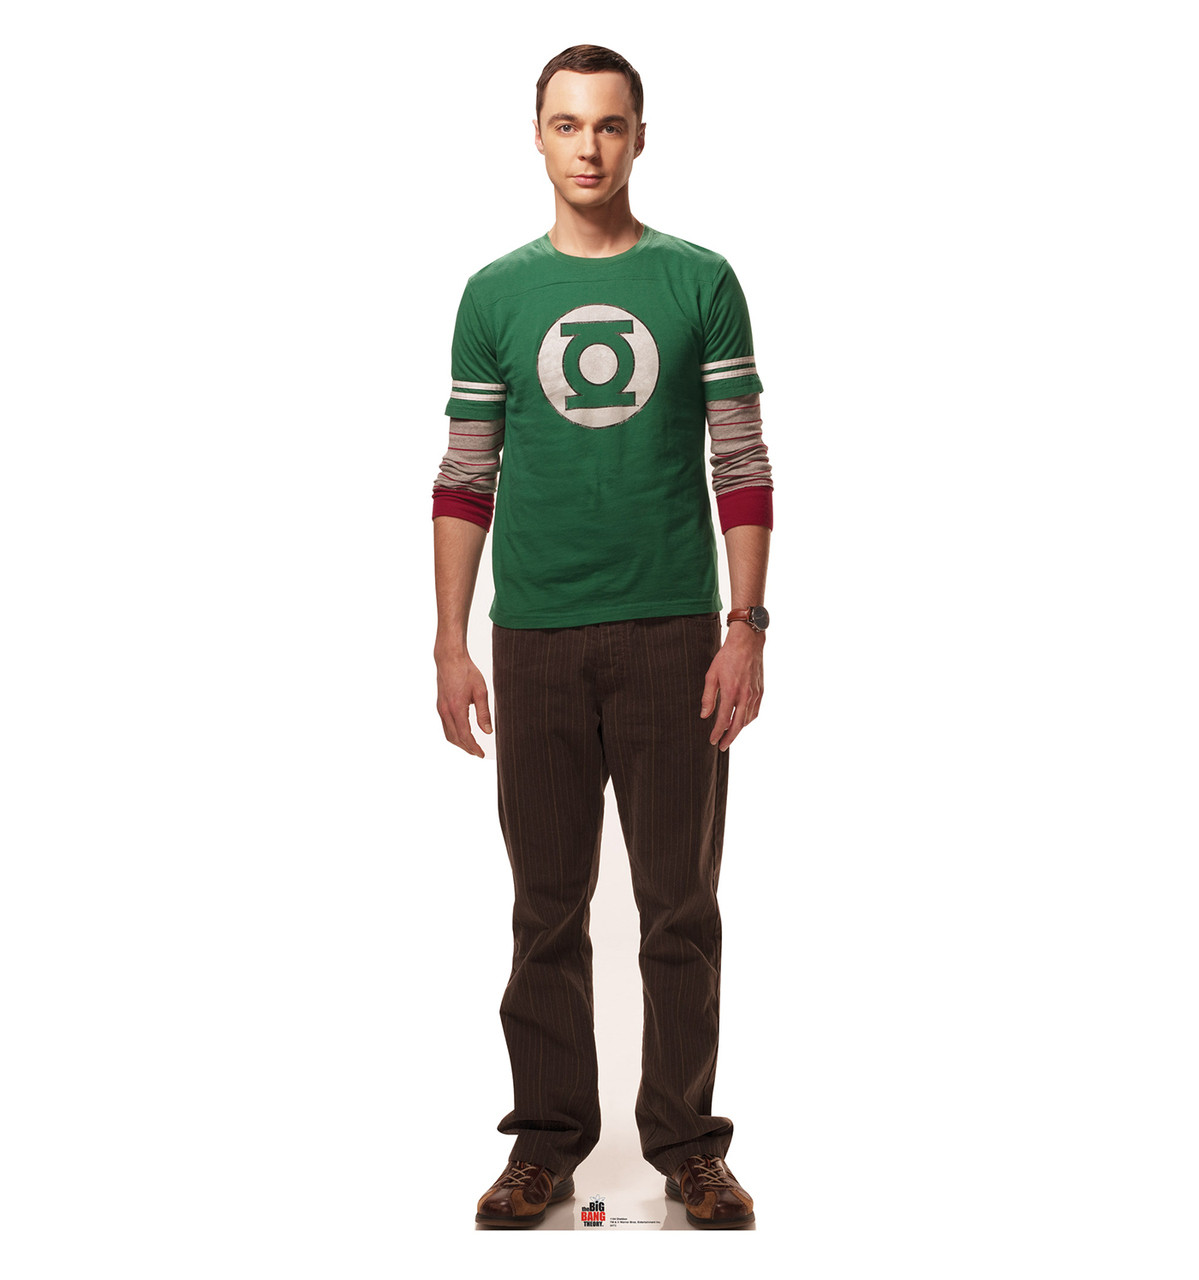 May The 4th Be With You Sheldon Cooper: Big Bang Theory Cardboard Standup